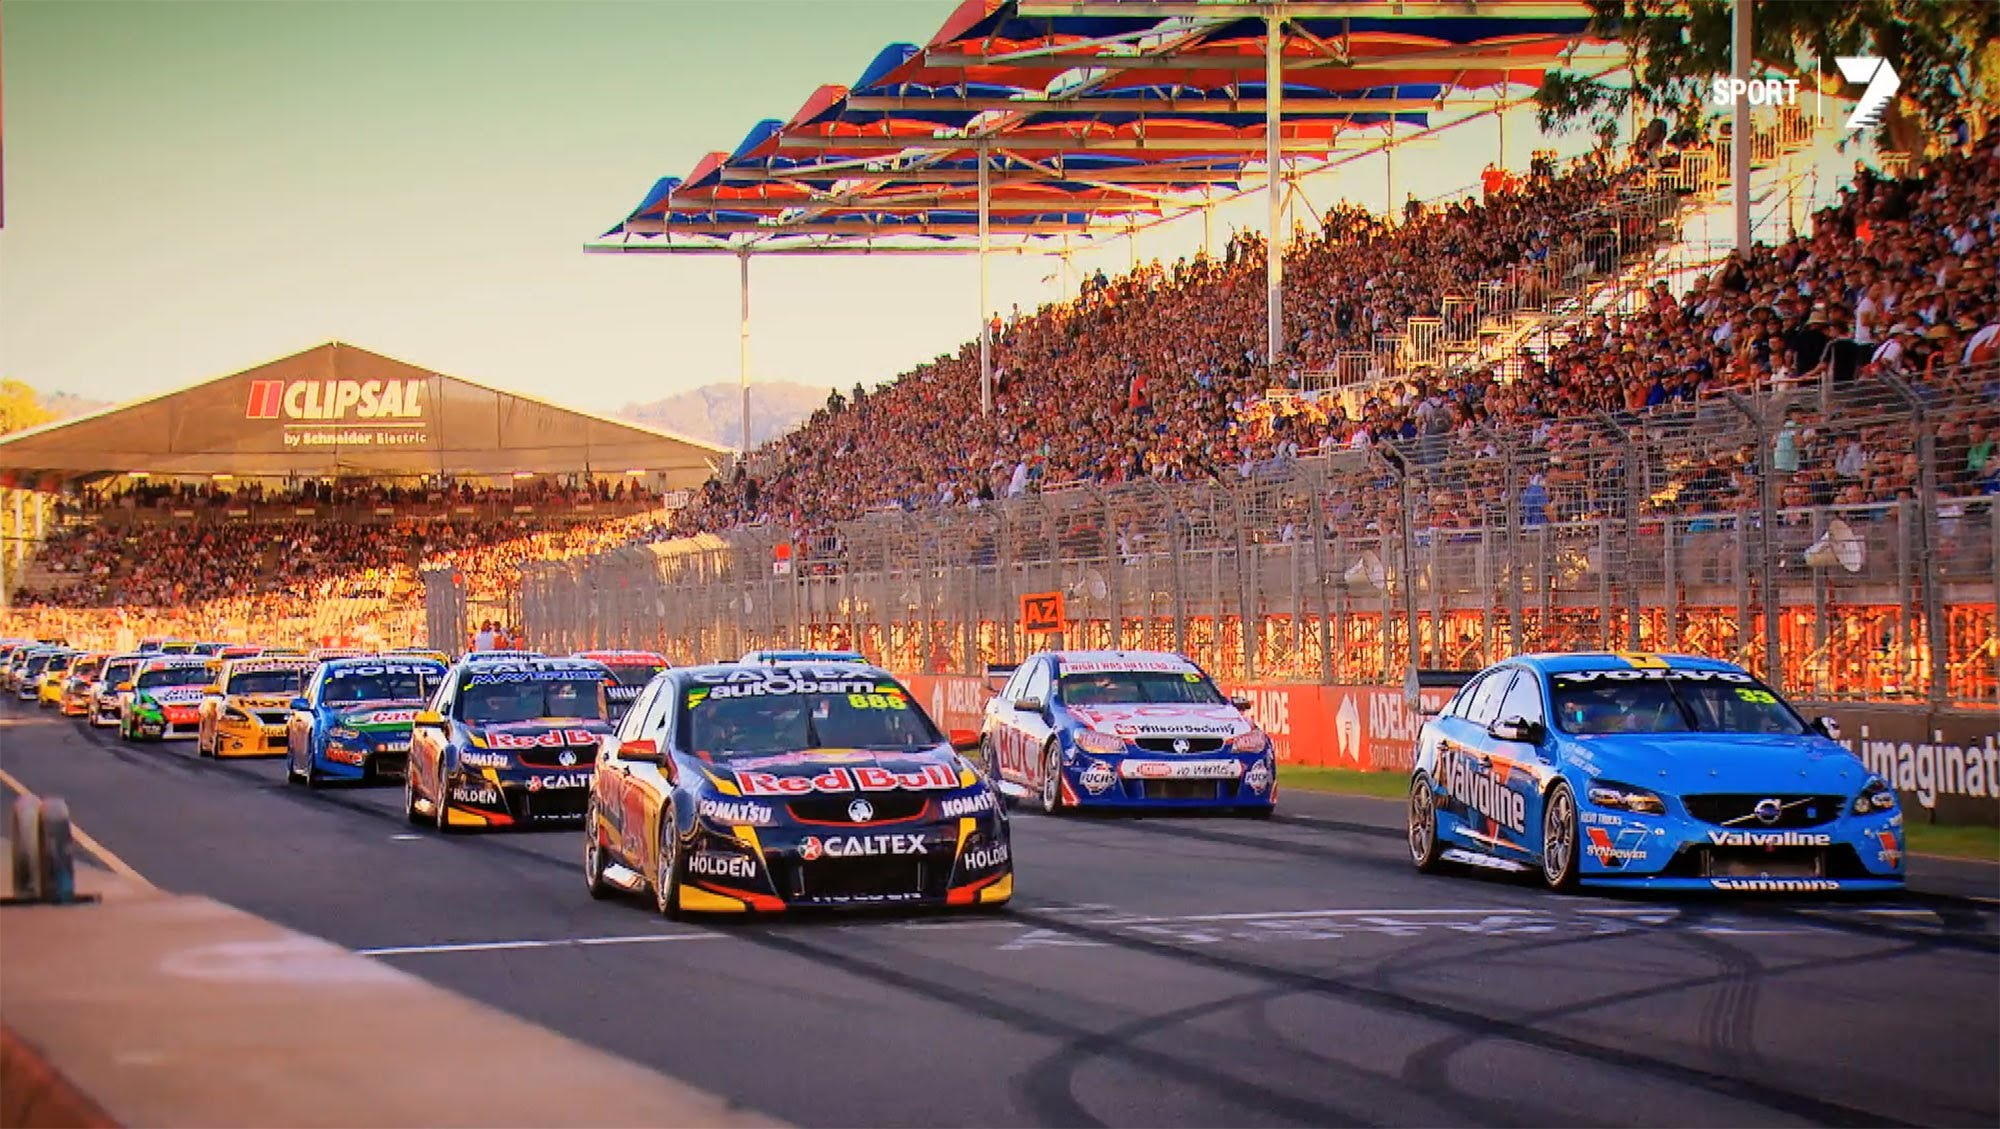 What's In The Future For Australia's V8 Supercar Series Now That Ford Is Ending Official Involvement Next Year?